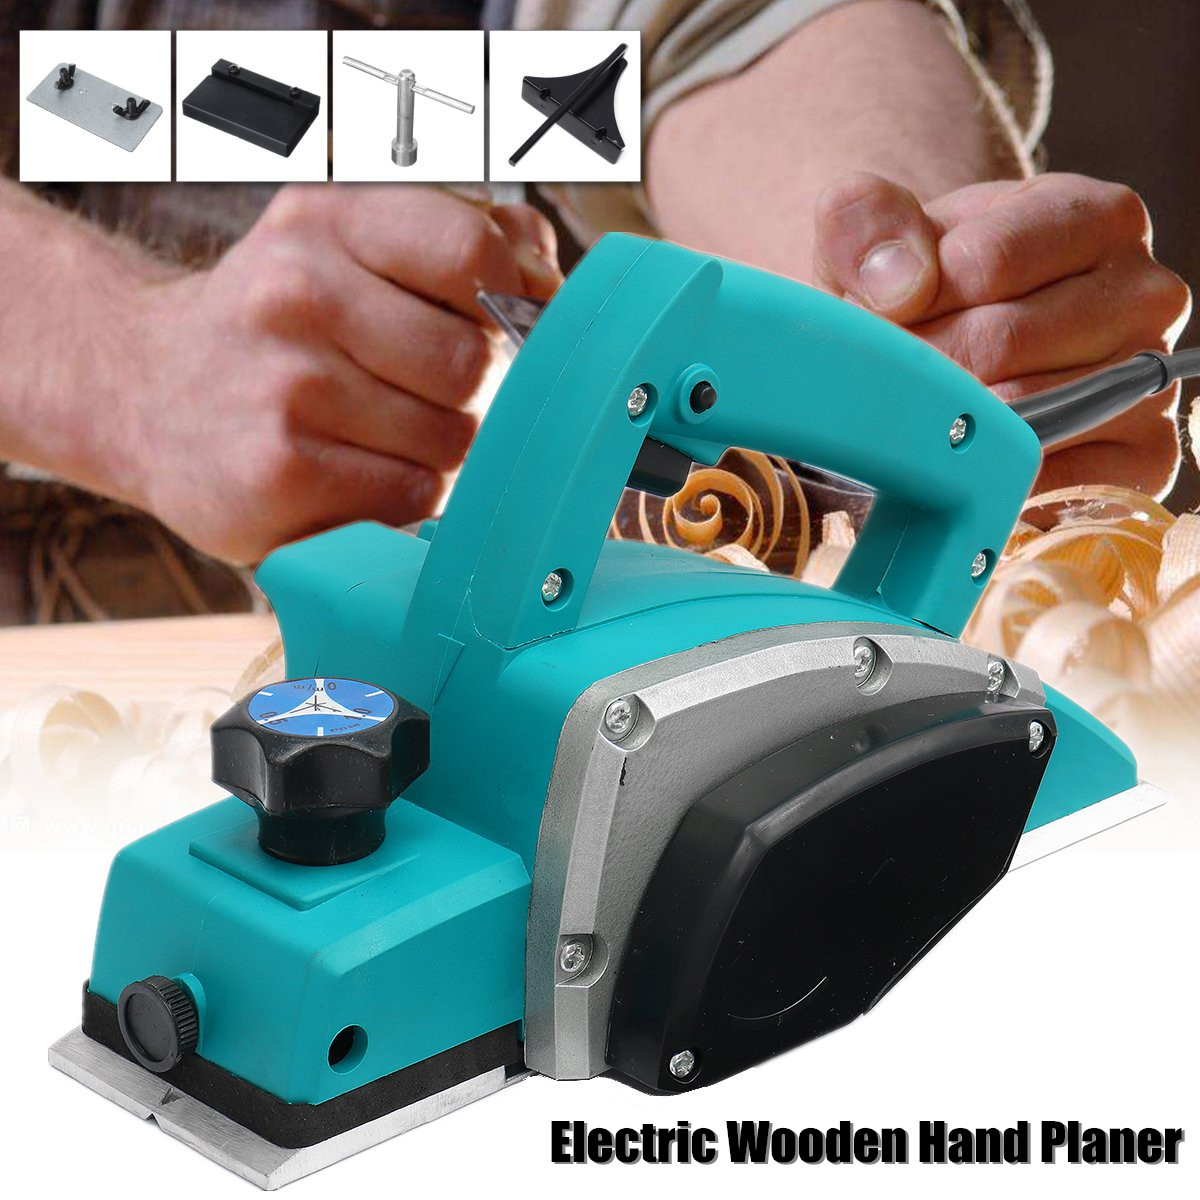 Us 47 15 50 Off 220v 110v 1000w Electric Planer Powerful Wooden Handheld Planer Carpenter Woodworking File Tool Home Diy Power Tools Kit In Electric